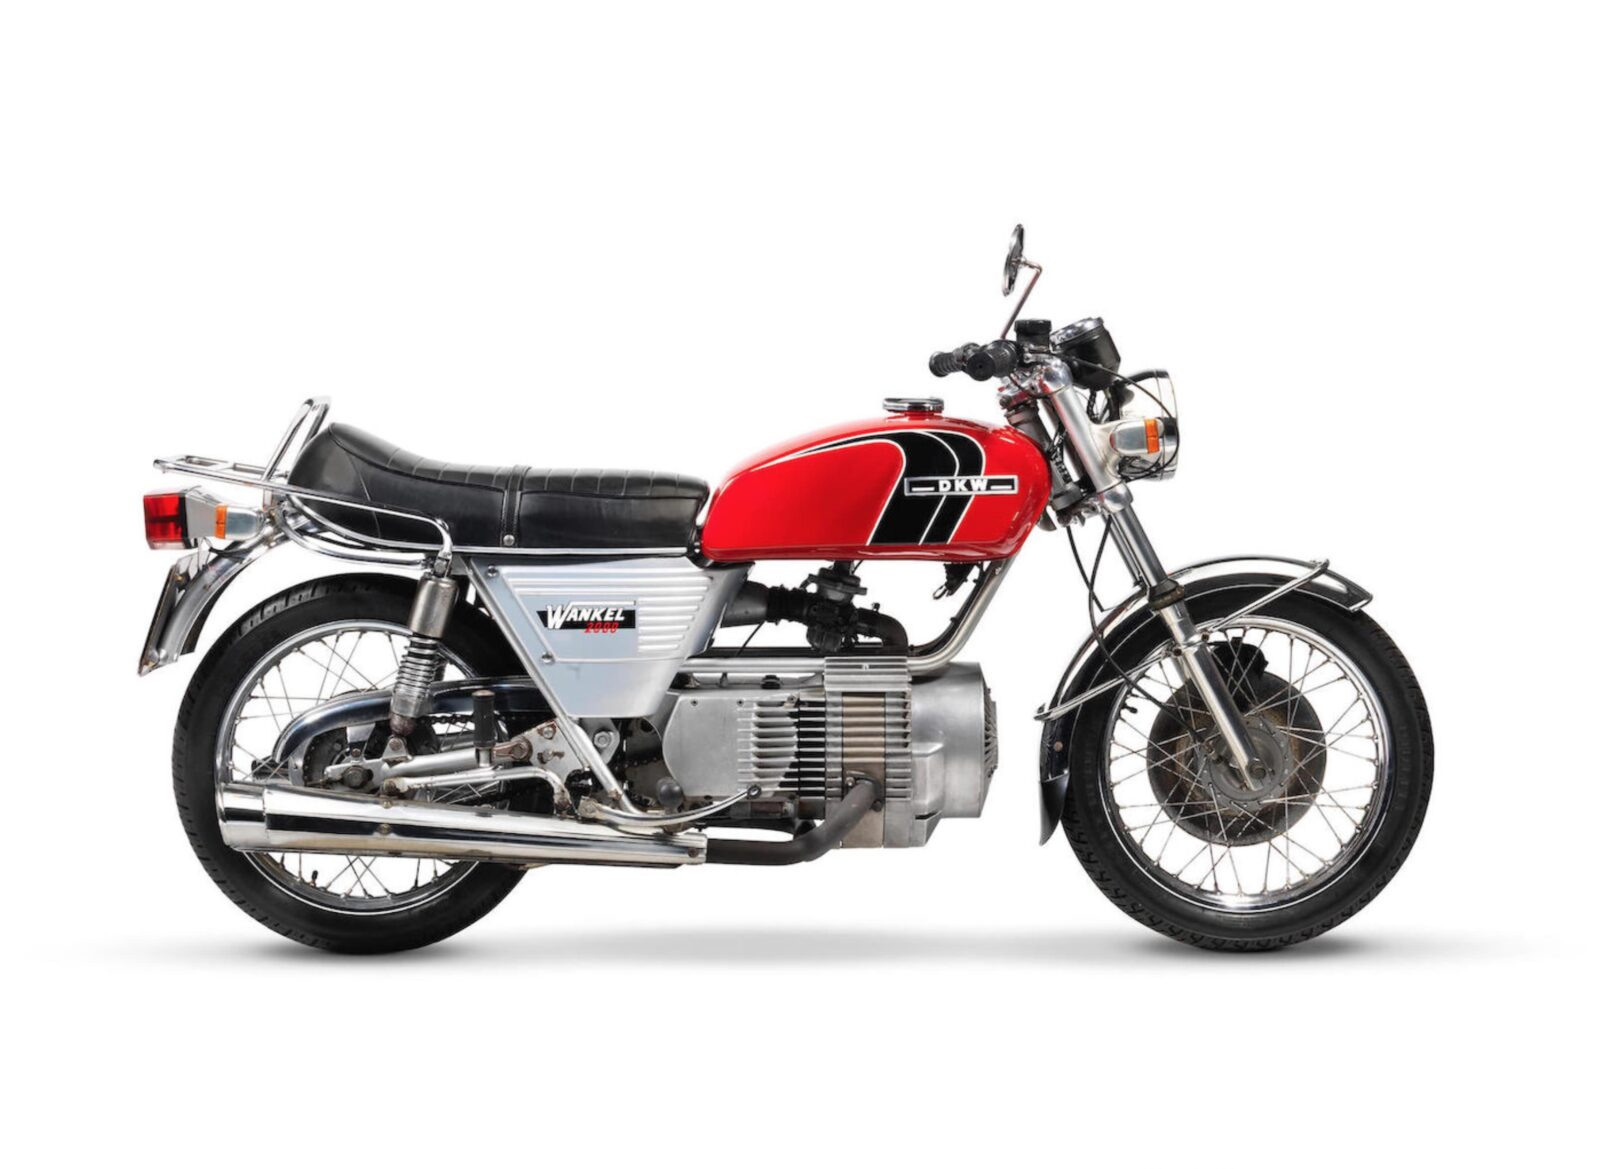 DKW W2000 Rotary - A Wankel Rotary Motorcycle